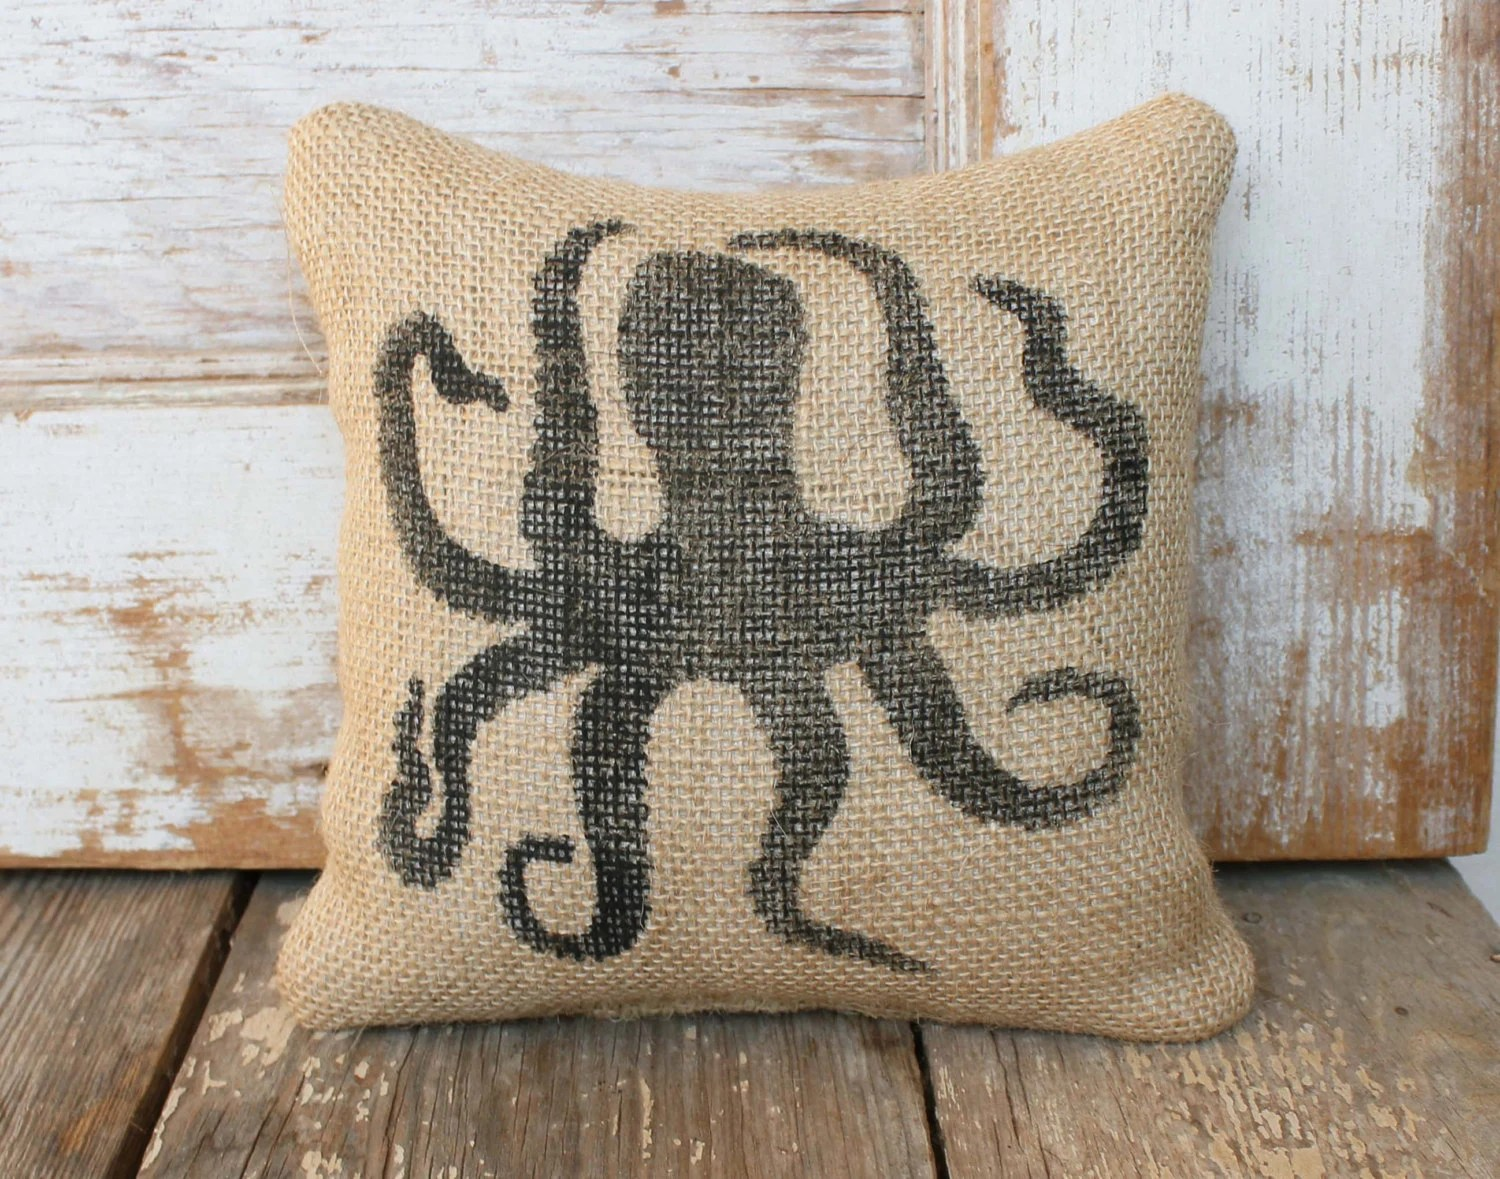 Nautical Doorstop Octopus Burlap Feed Sack Doorstop Nautical Door Stop